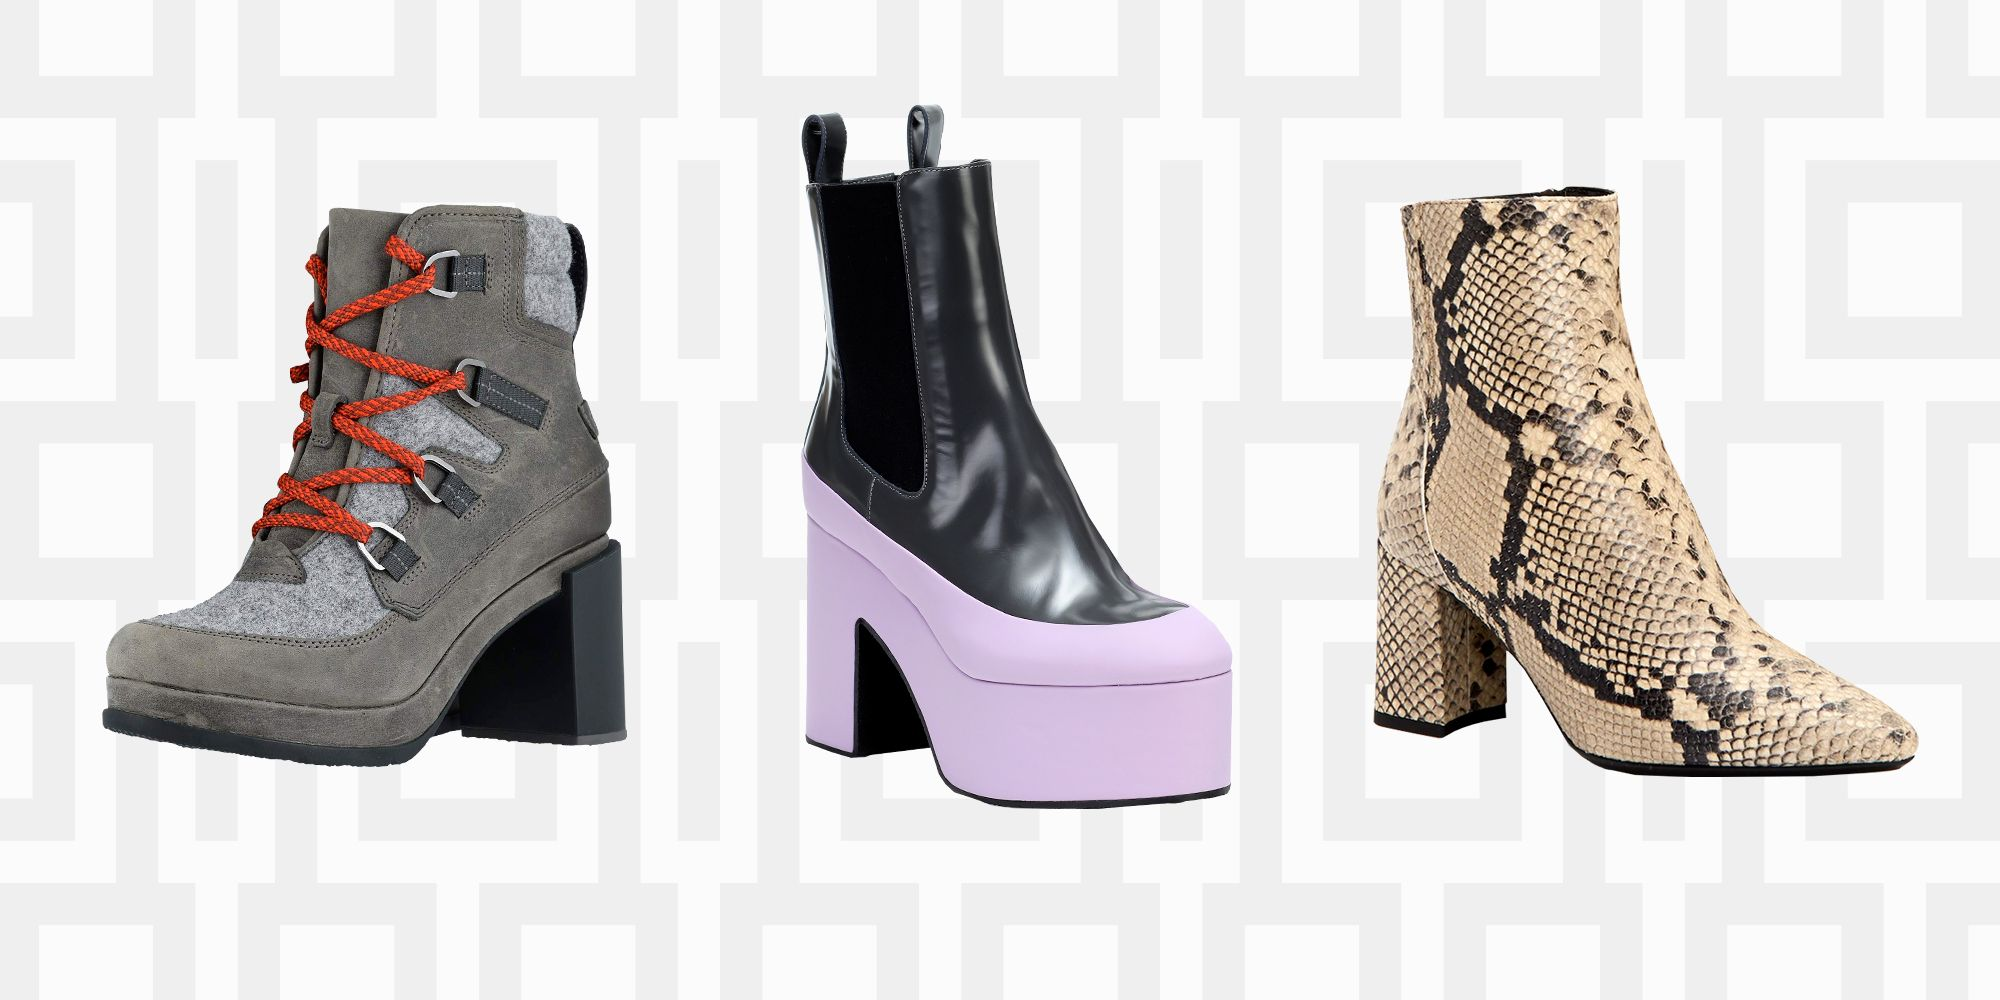 The Weekly Covet: Favorite Winter Boots